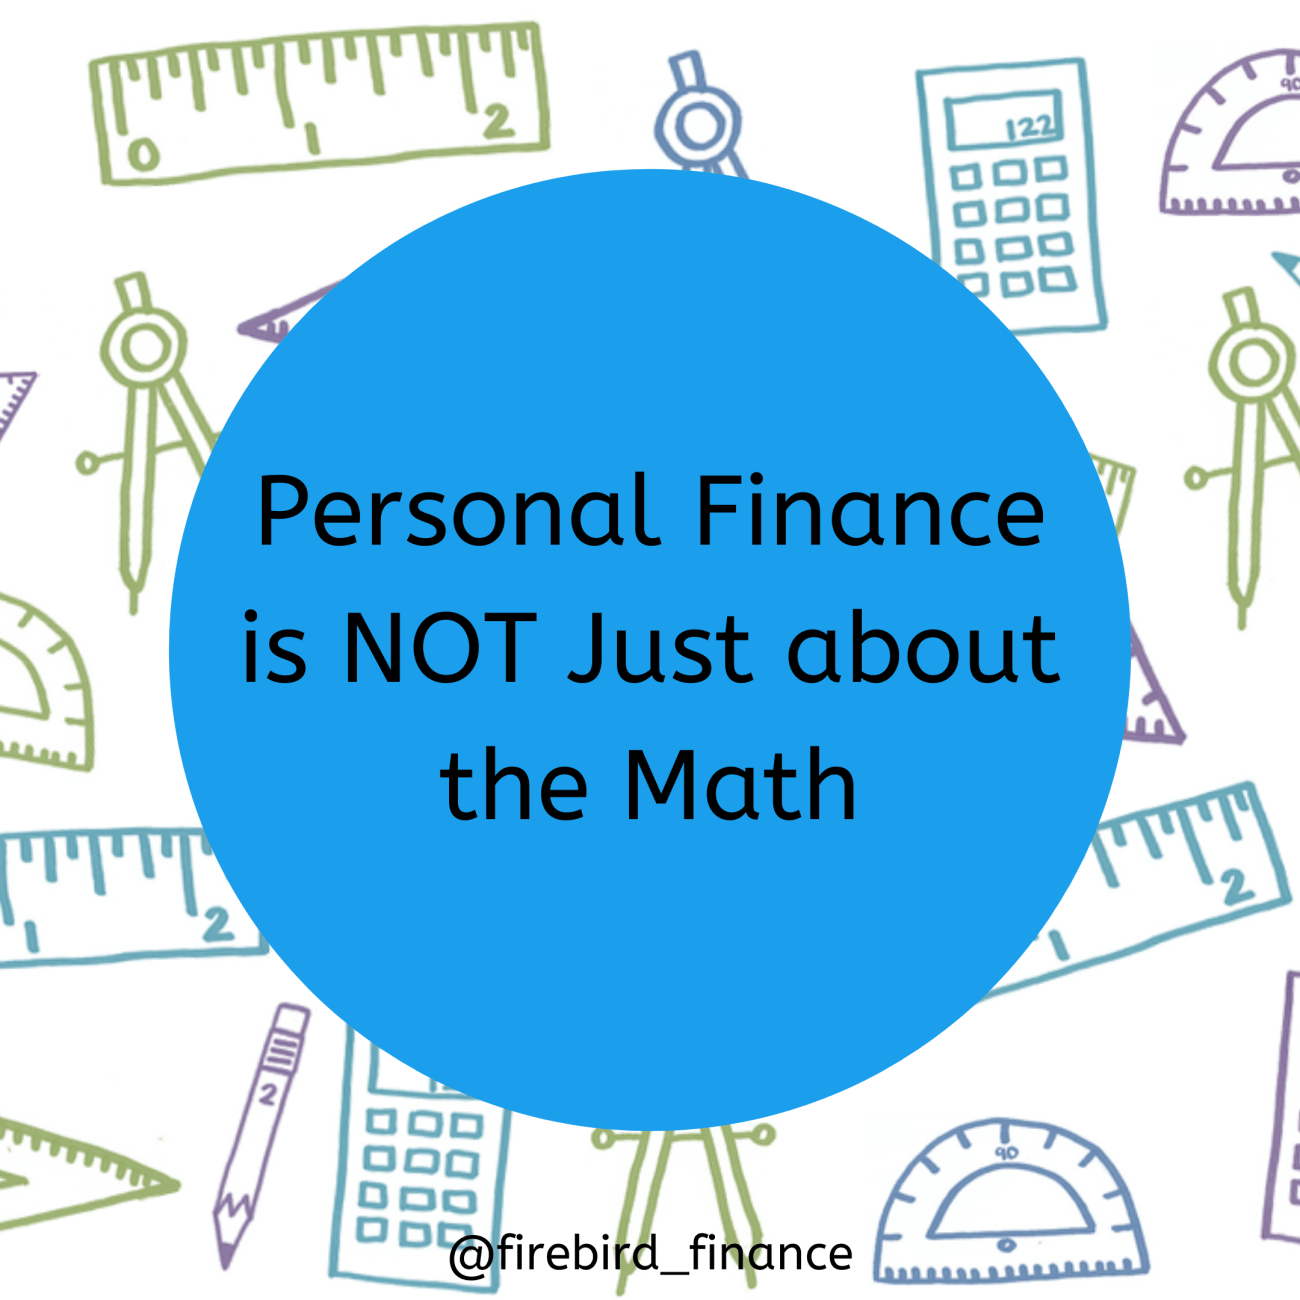 Personal Finance is NOT Just about the Math